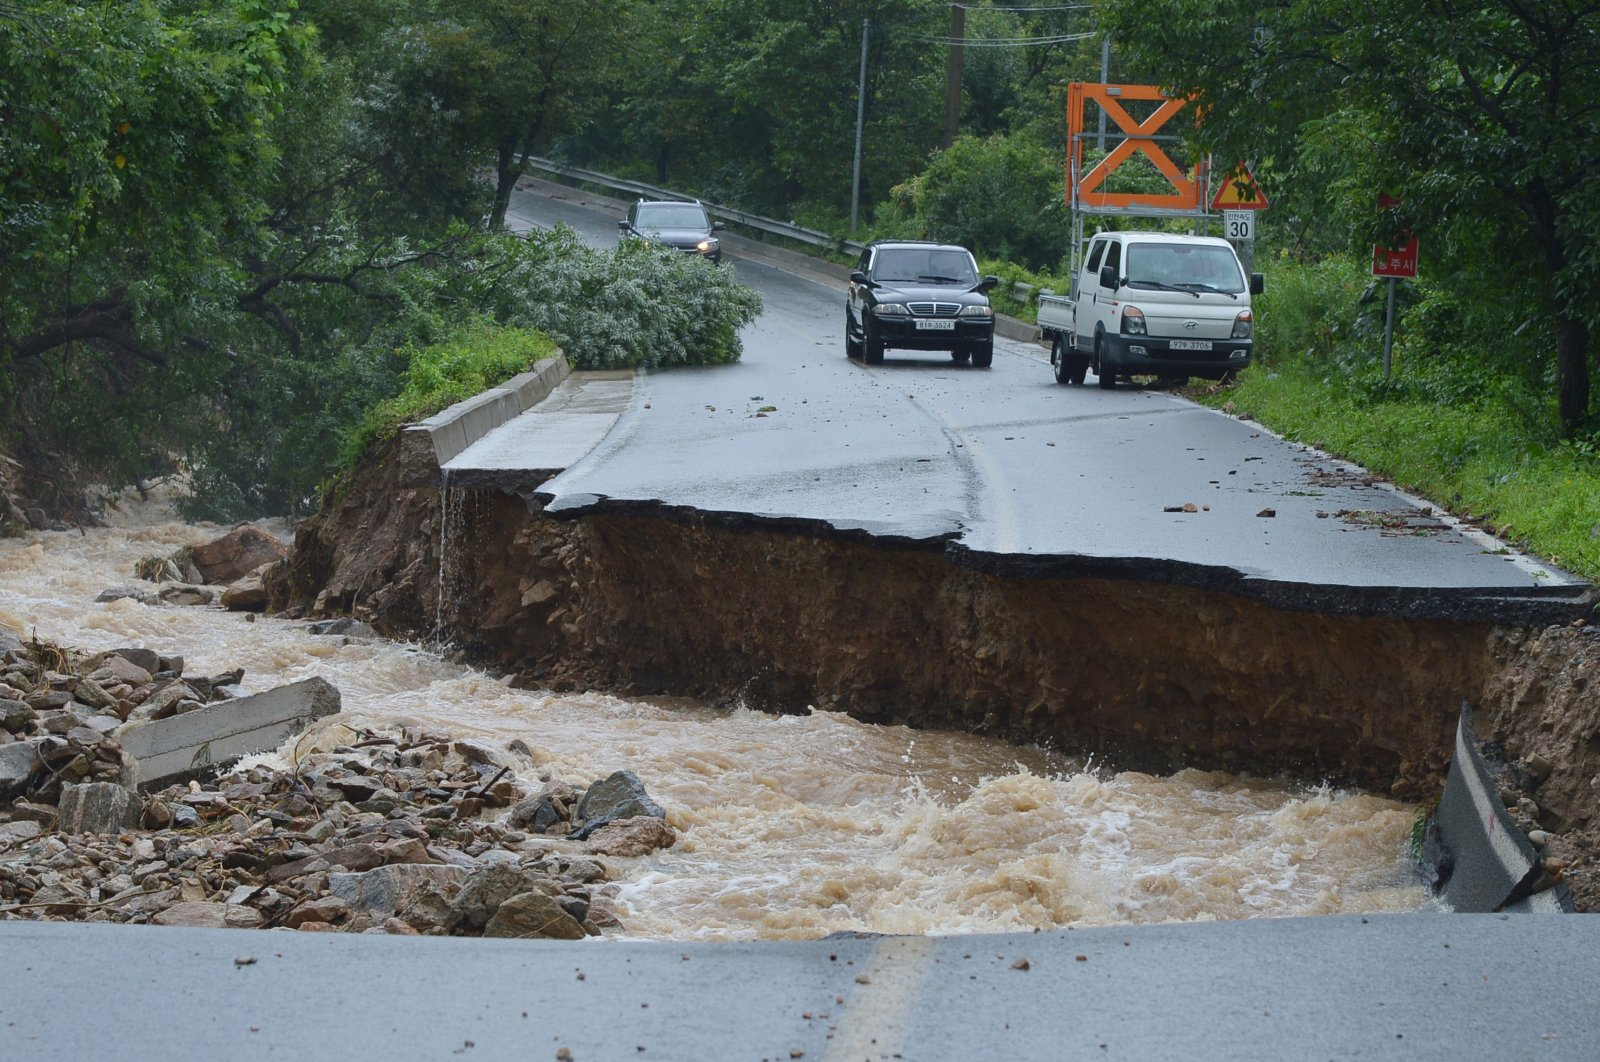 A road that collapsed due to heavy rain is seen in Chungju, South Korea, Aug. 2, 2020. (EPA Photo)